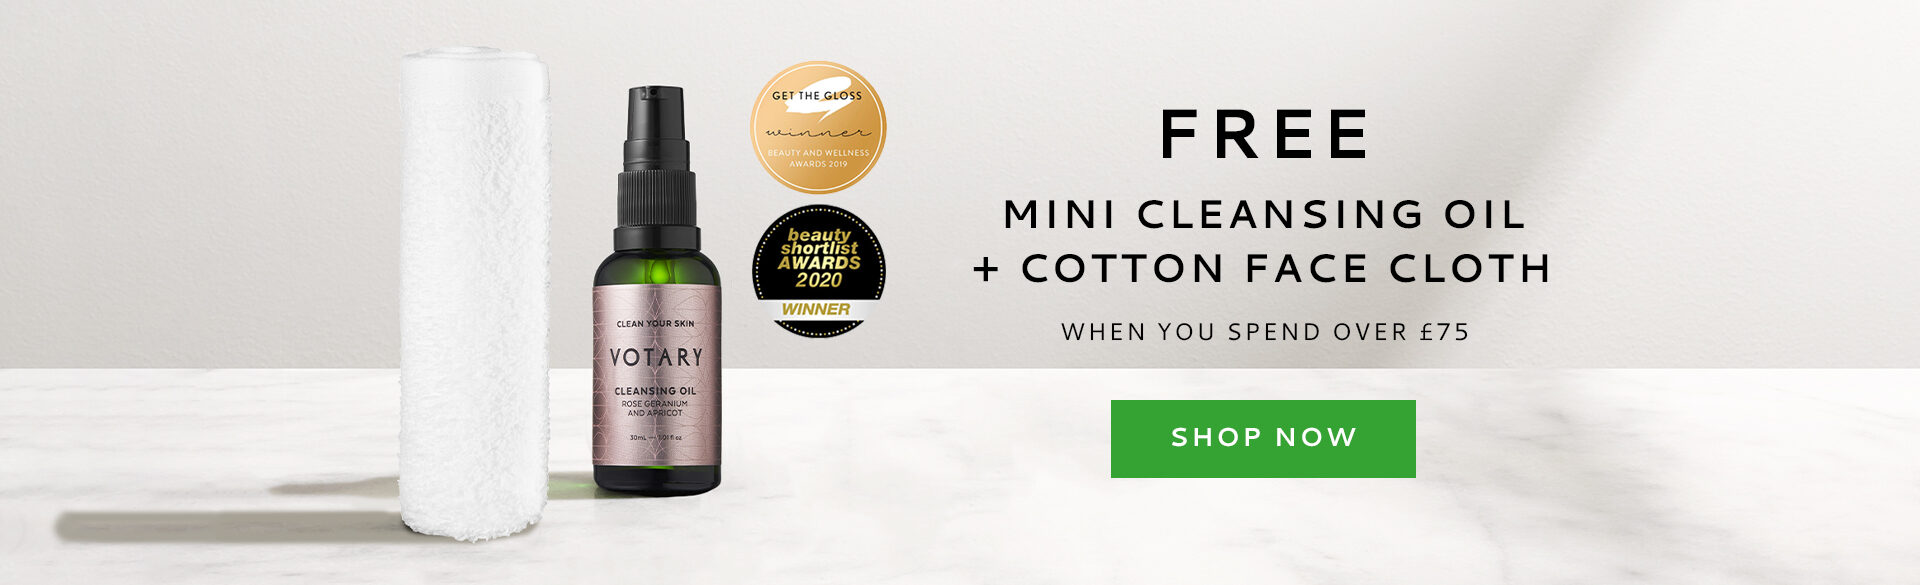 Free Mini Cleansing Oil